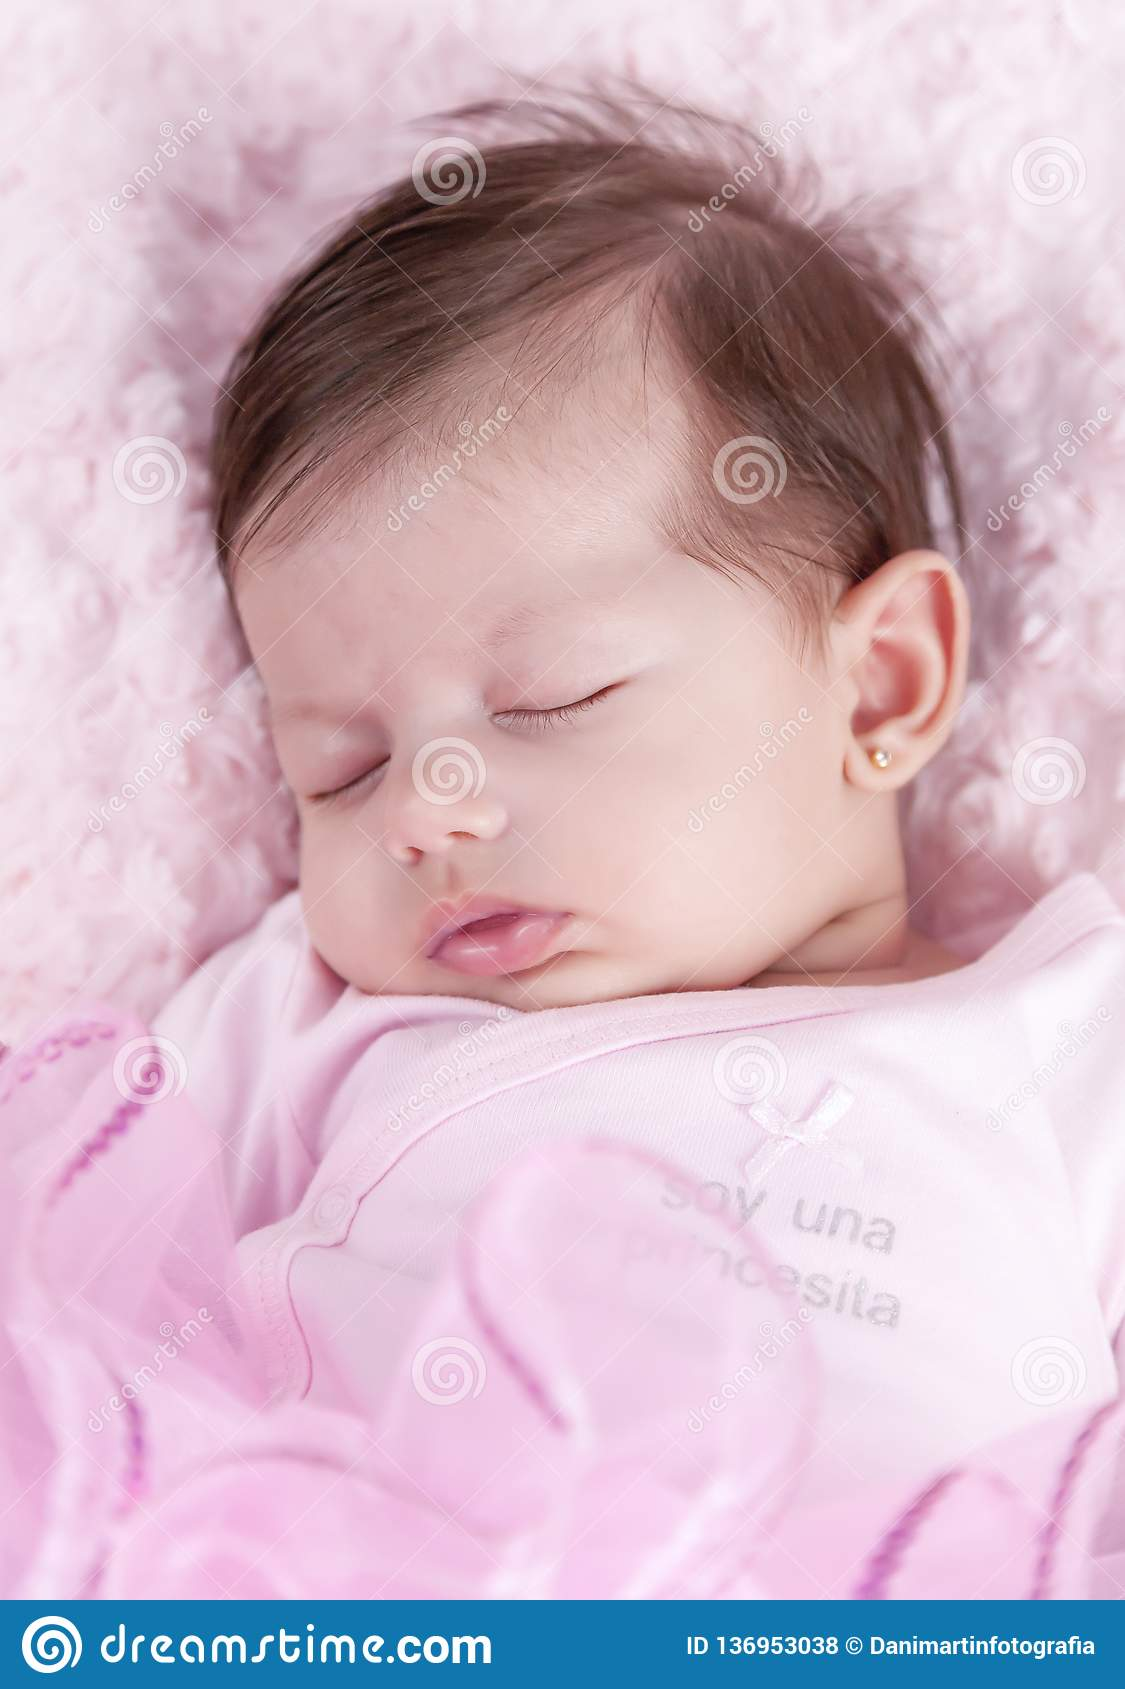 Baby Girl Asleep On Pink Bed. Newborn. Pink Clothes Stock ...